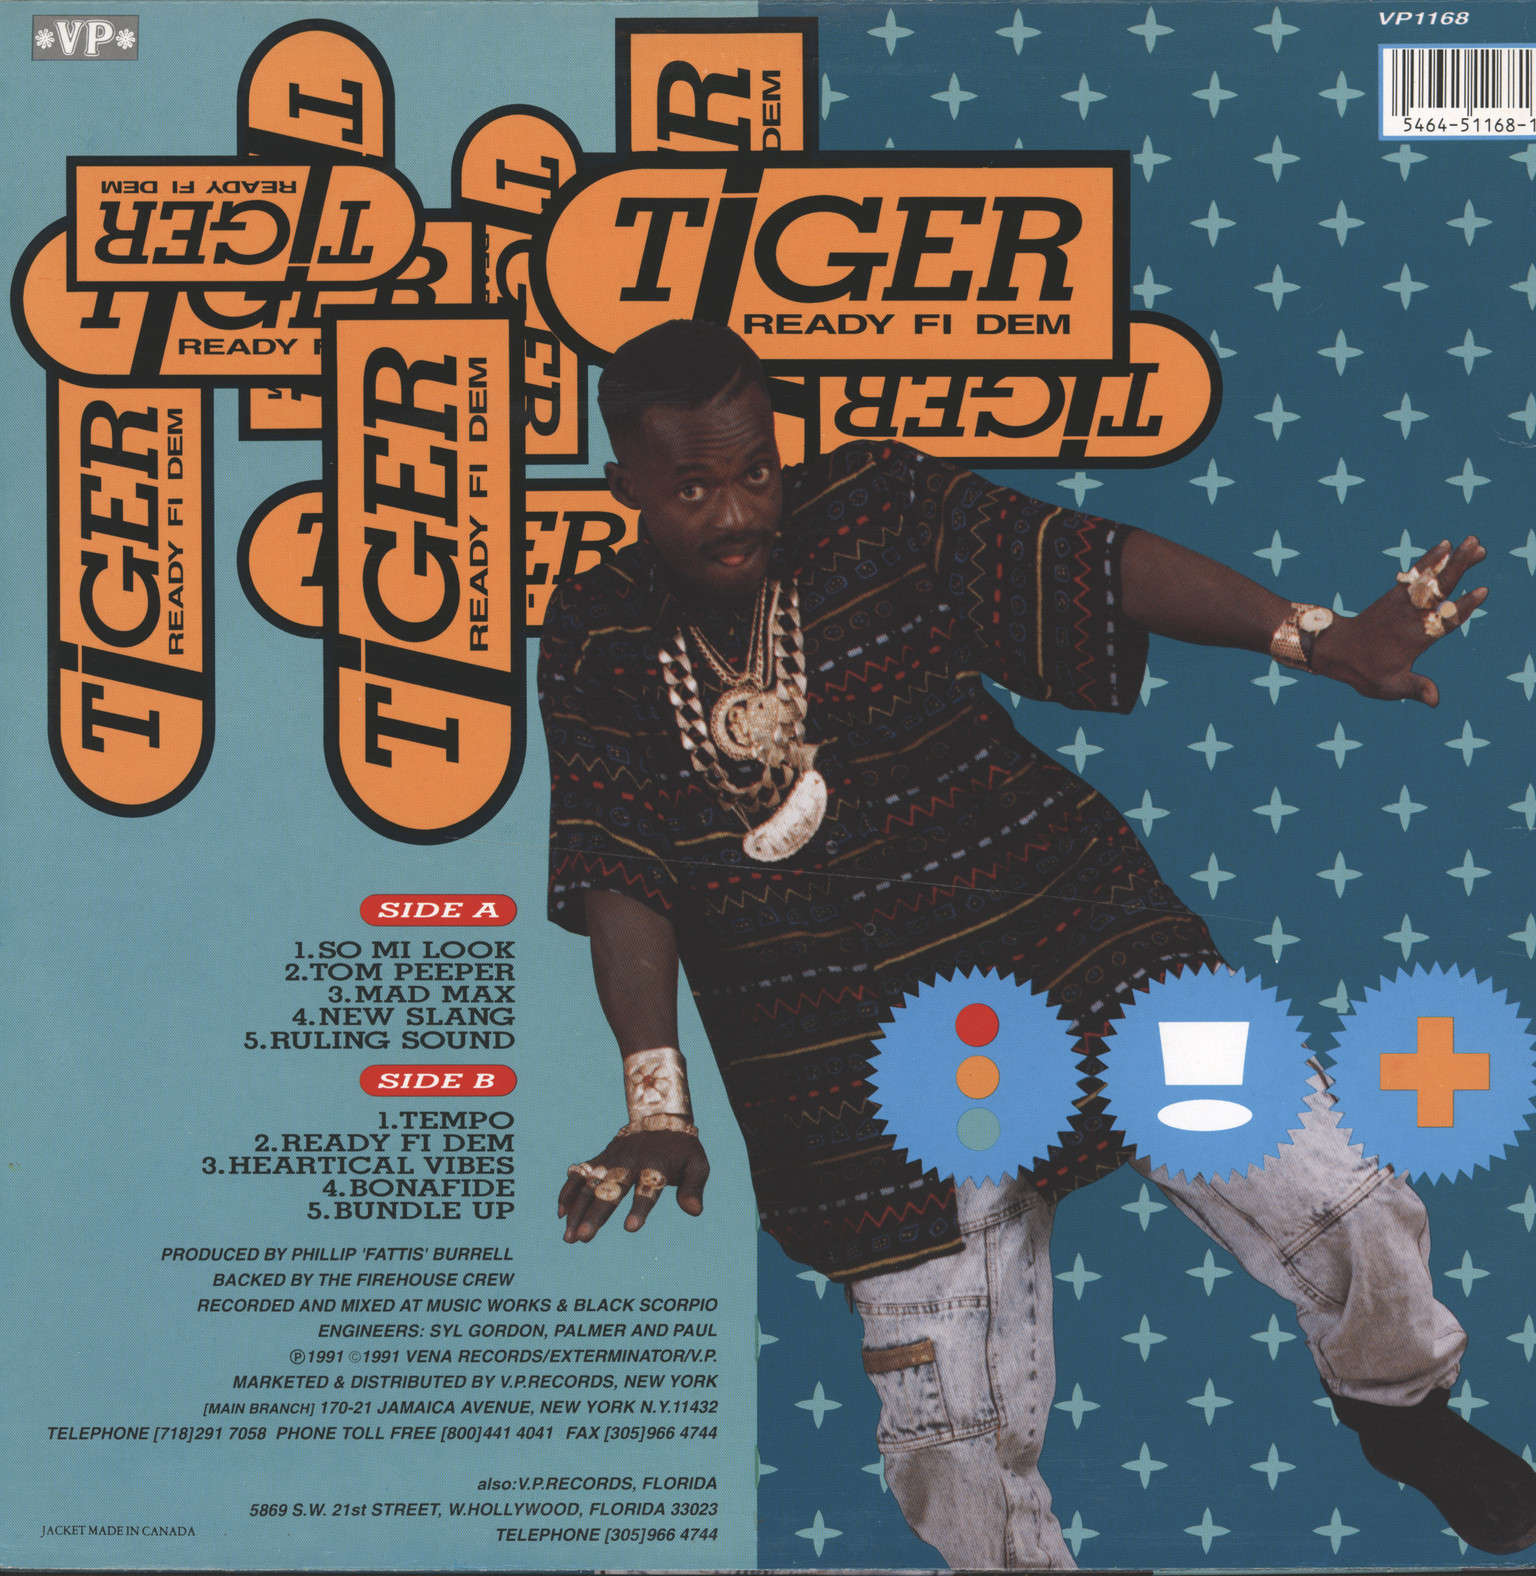 Tiger: Ready Fi Dem, LP (Vinyl)